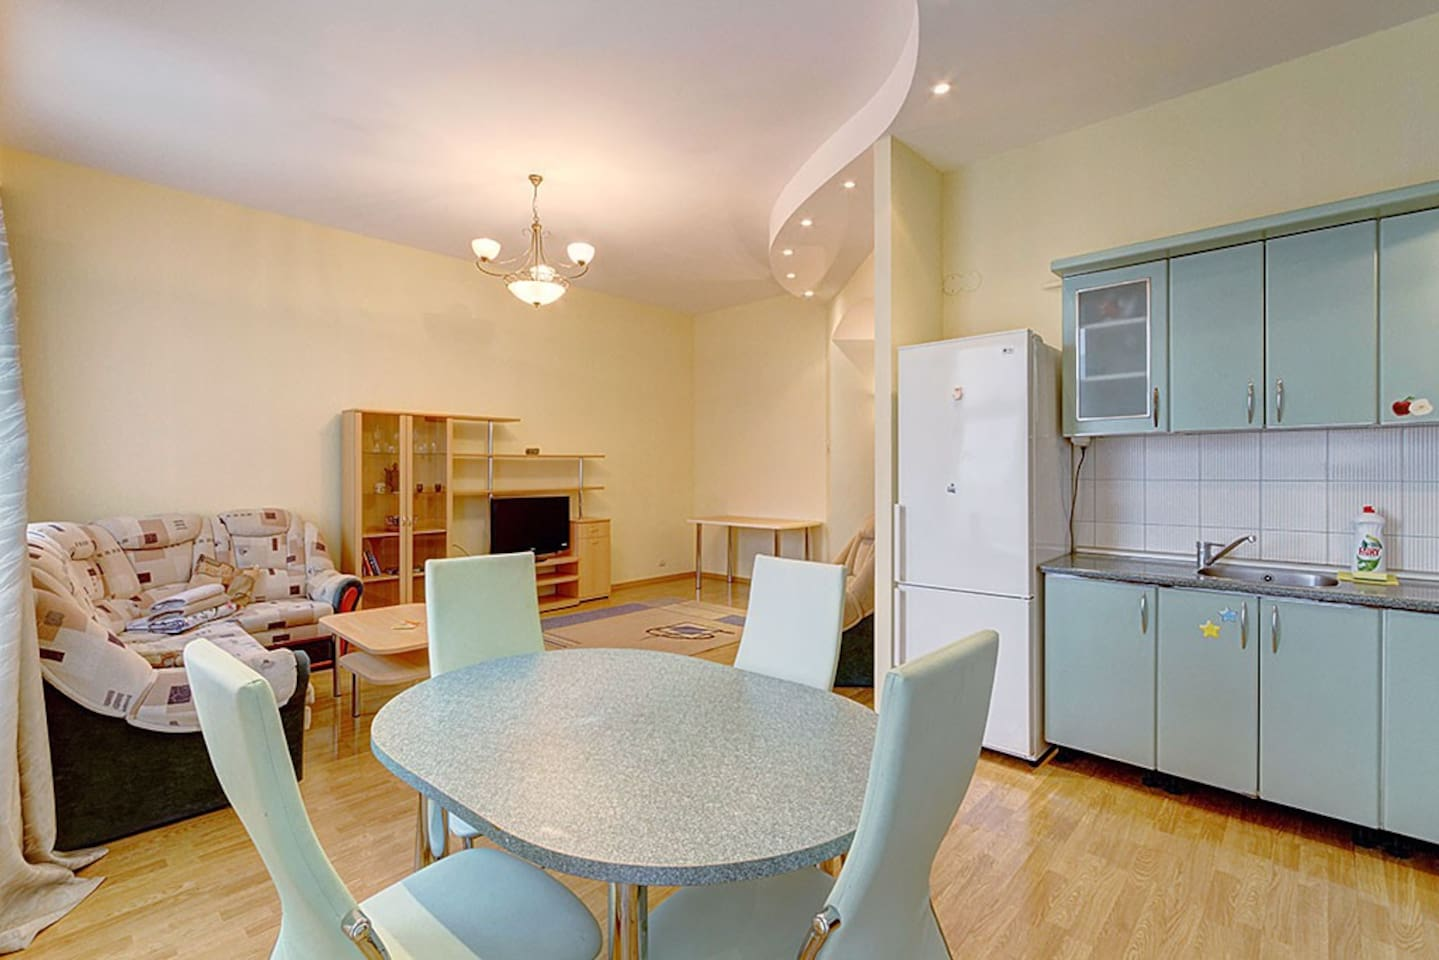 2bedroom apartment near Hermitage